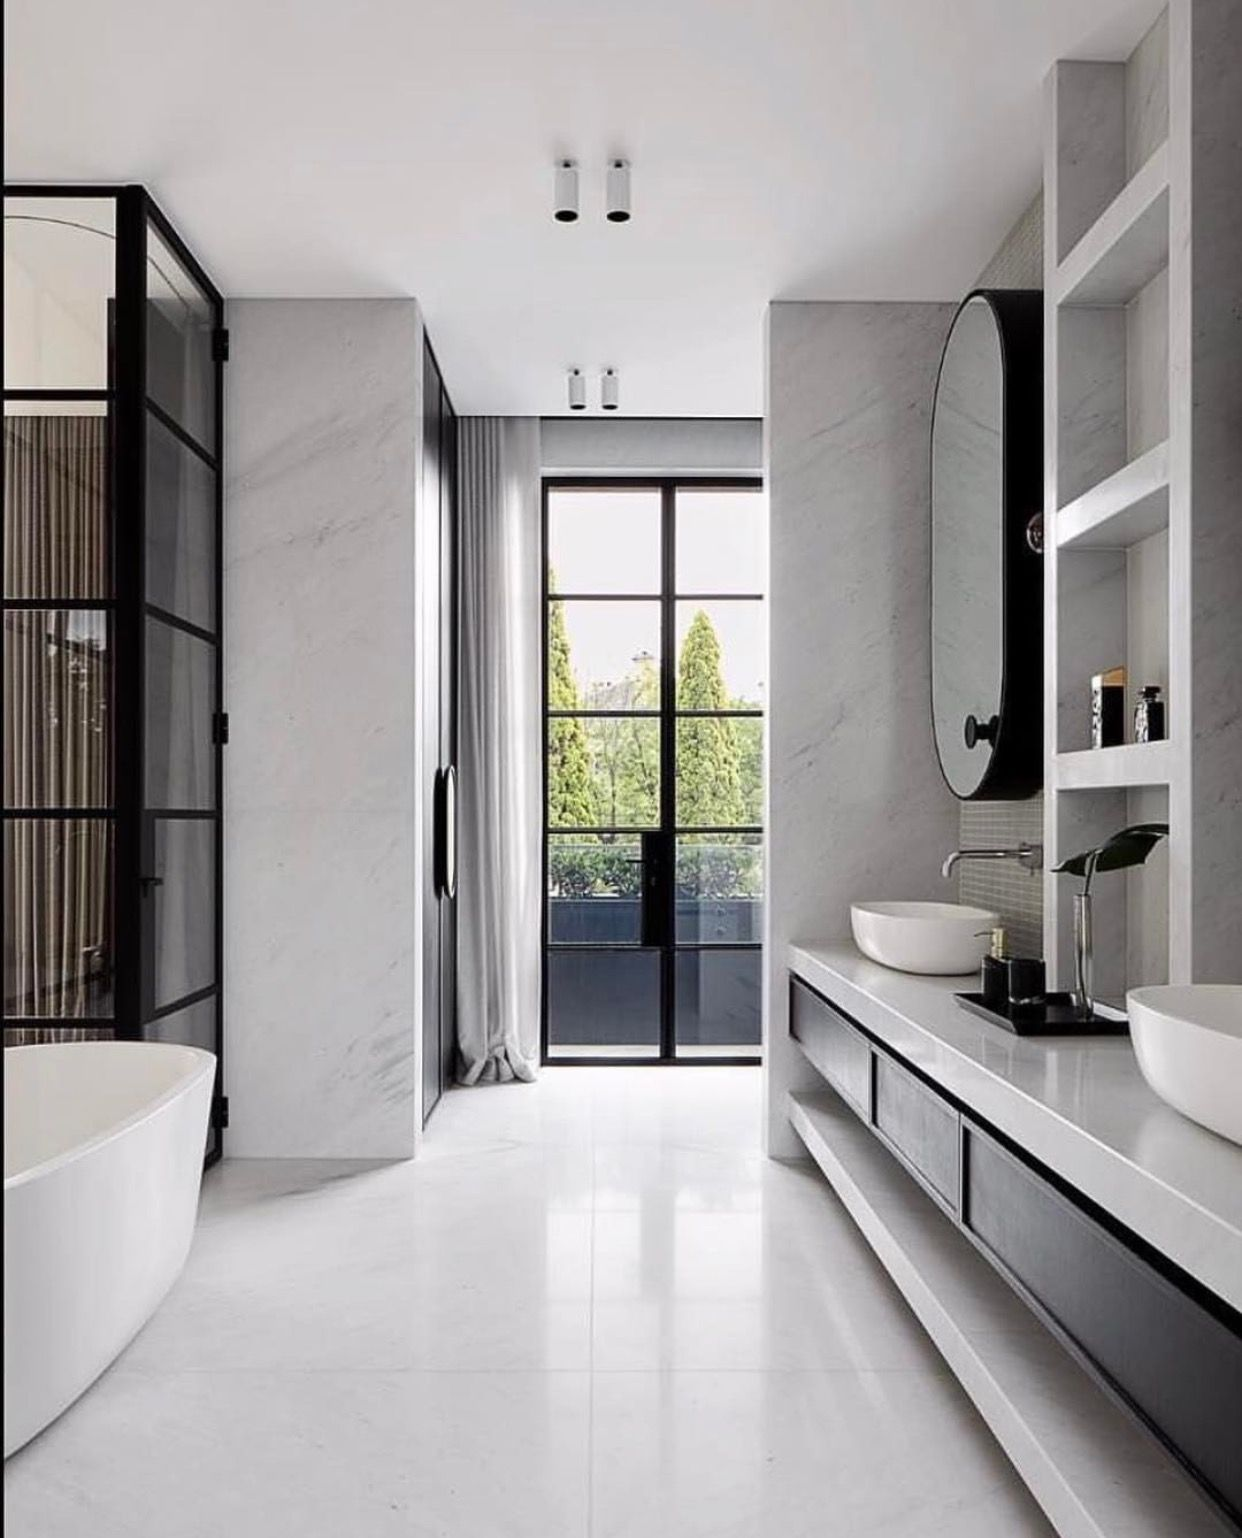 INSPIRATION: Curved Edges And Clean Lines In This Chic Bathroom Are A  Winning Combination With Black Steel Framed Doors.